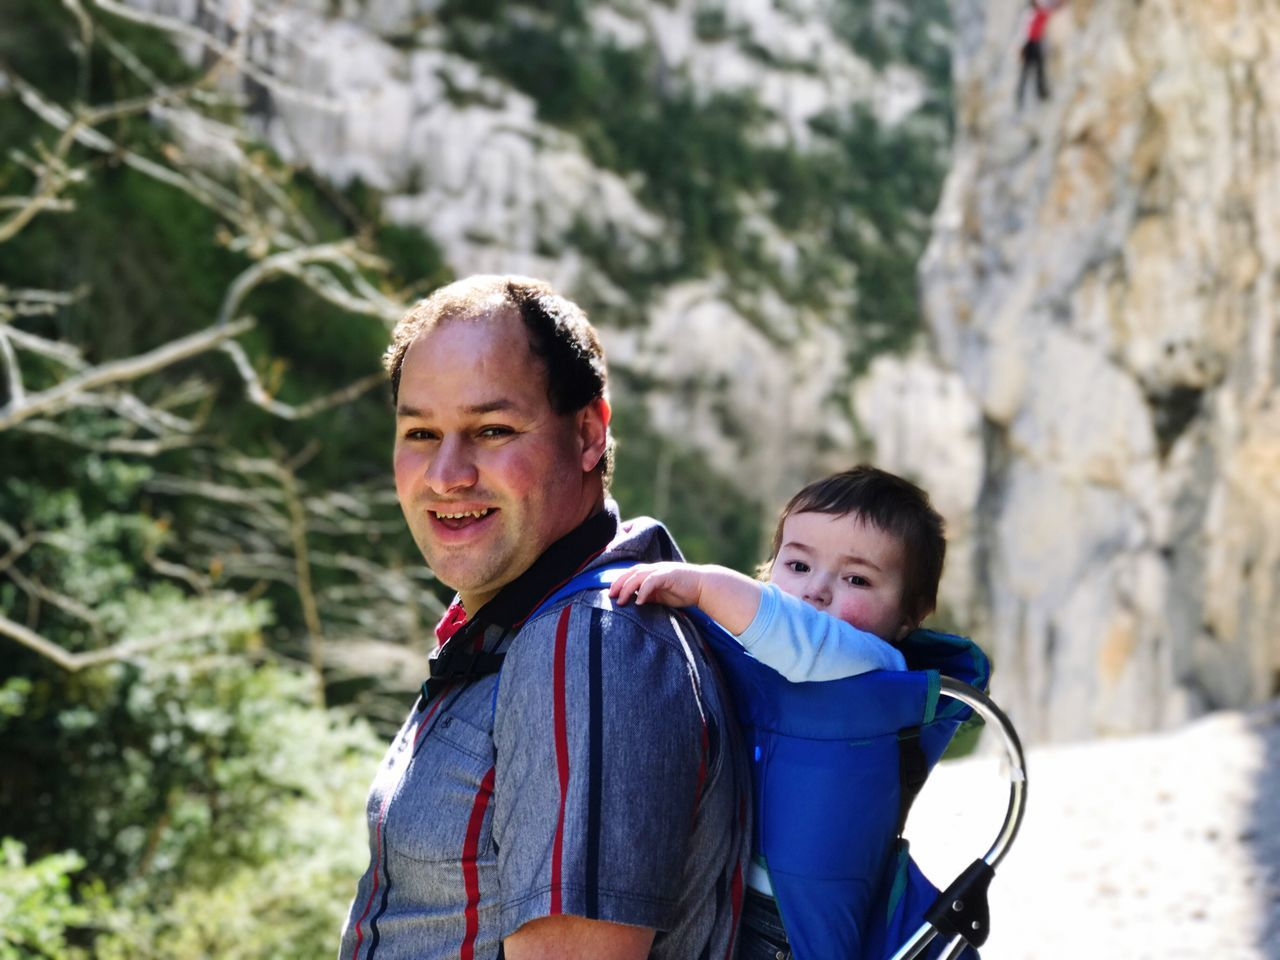 Hiking Baby Father Two People Child Boys Smiling Outdoors Childhood Leisure Activity Hiking Happiness Real People Family Togetherness Portrait Day People Adult Rock Climbing